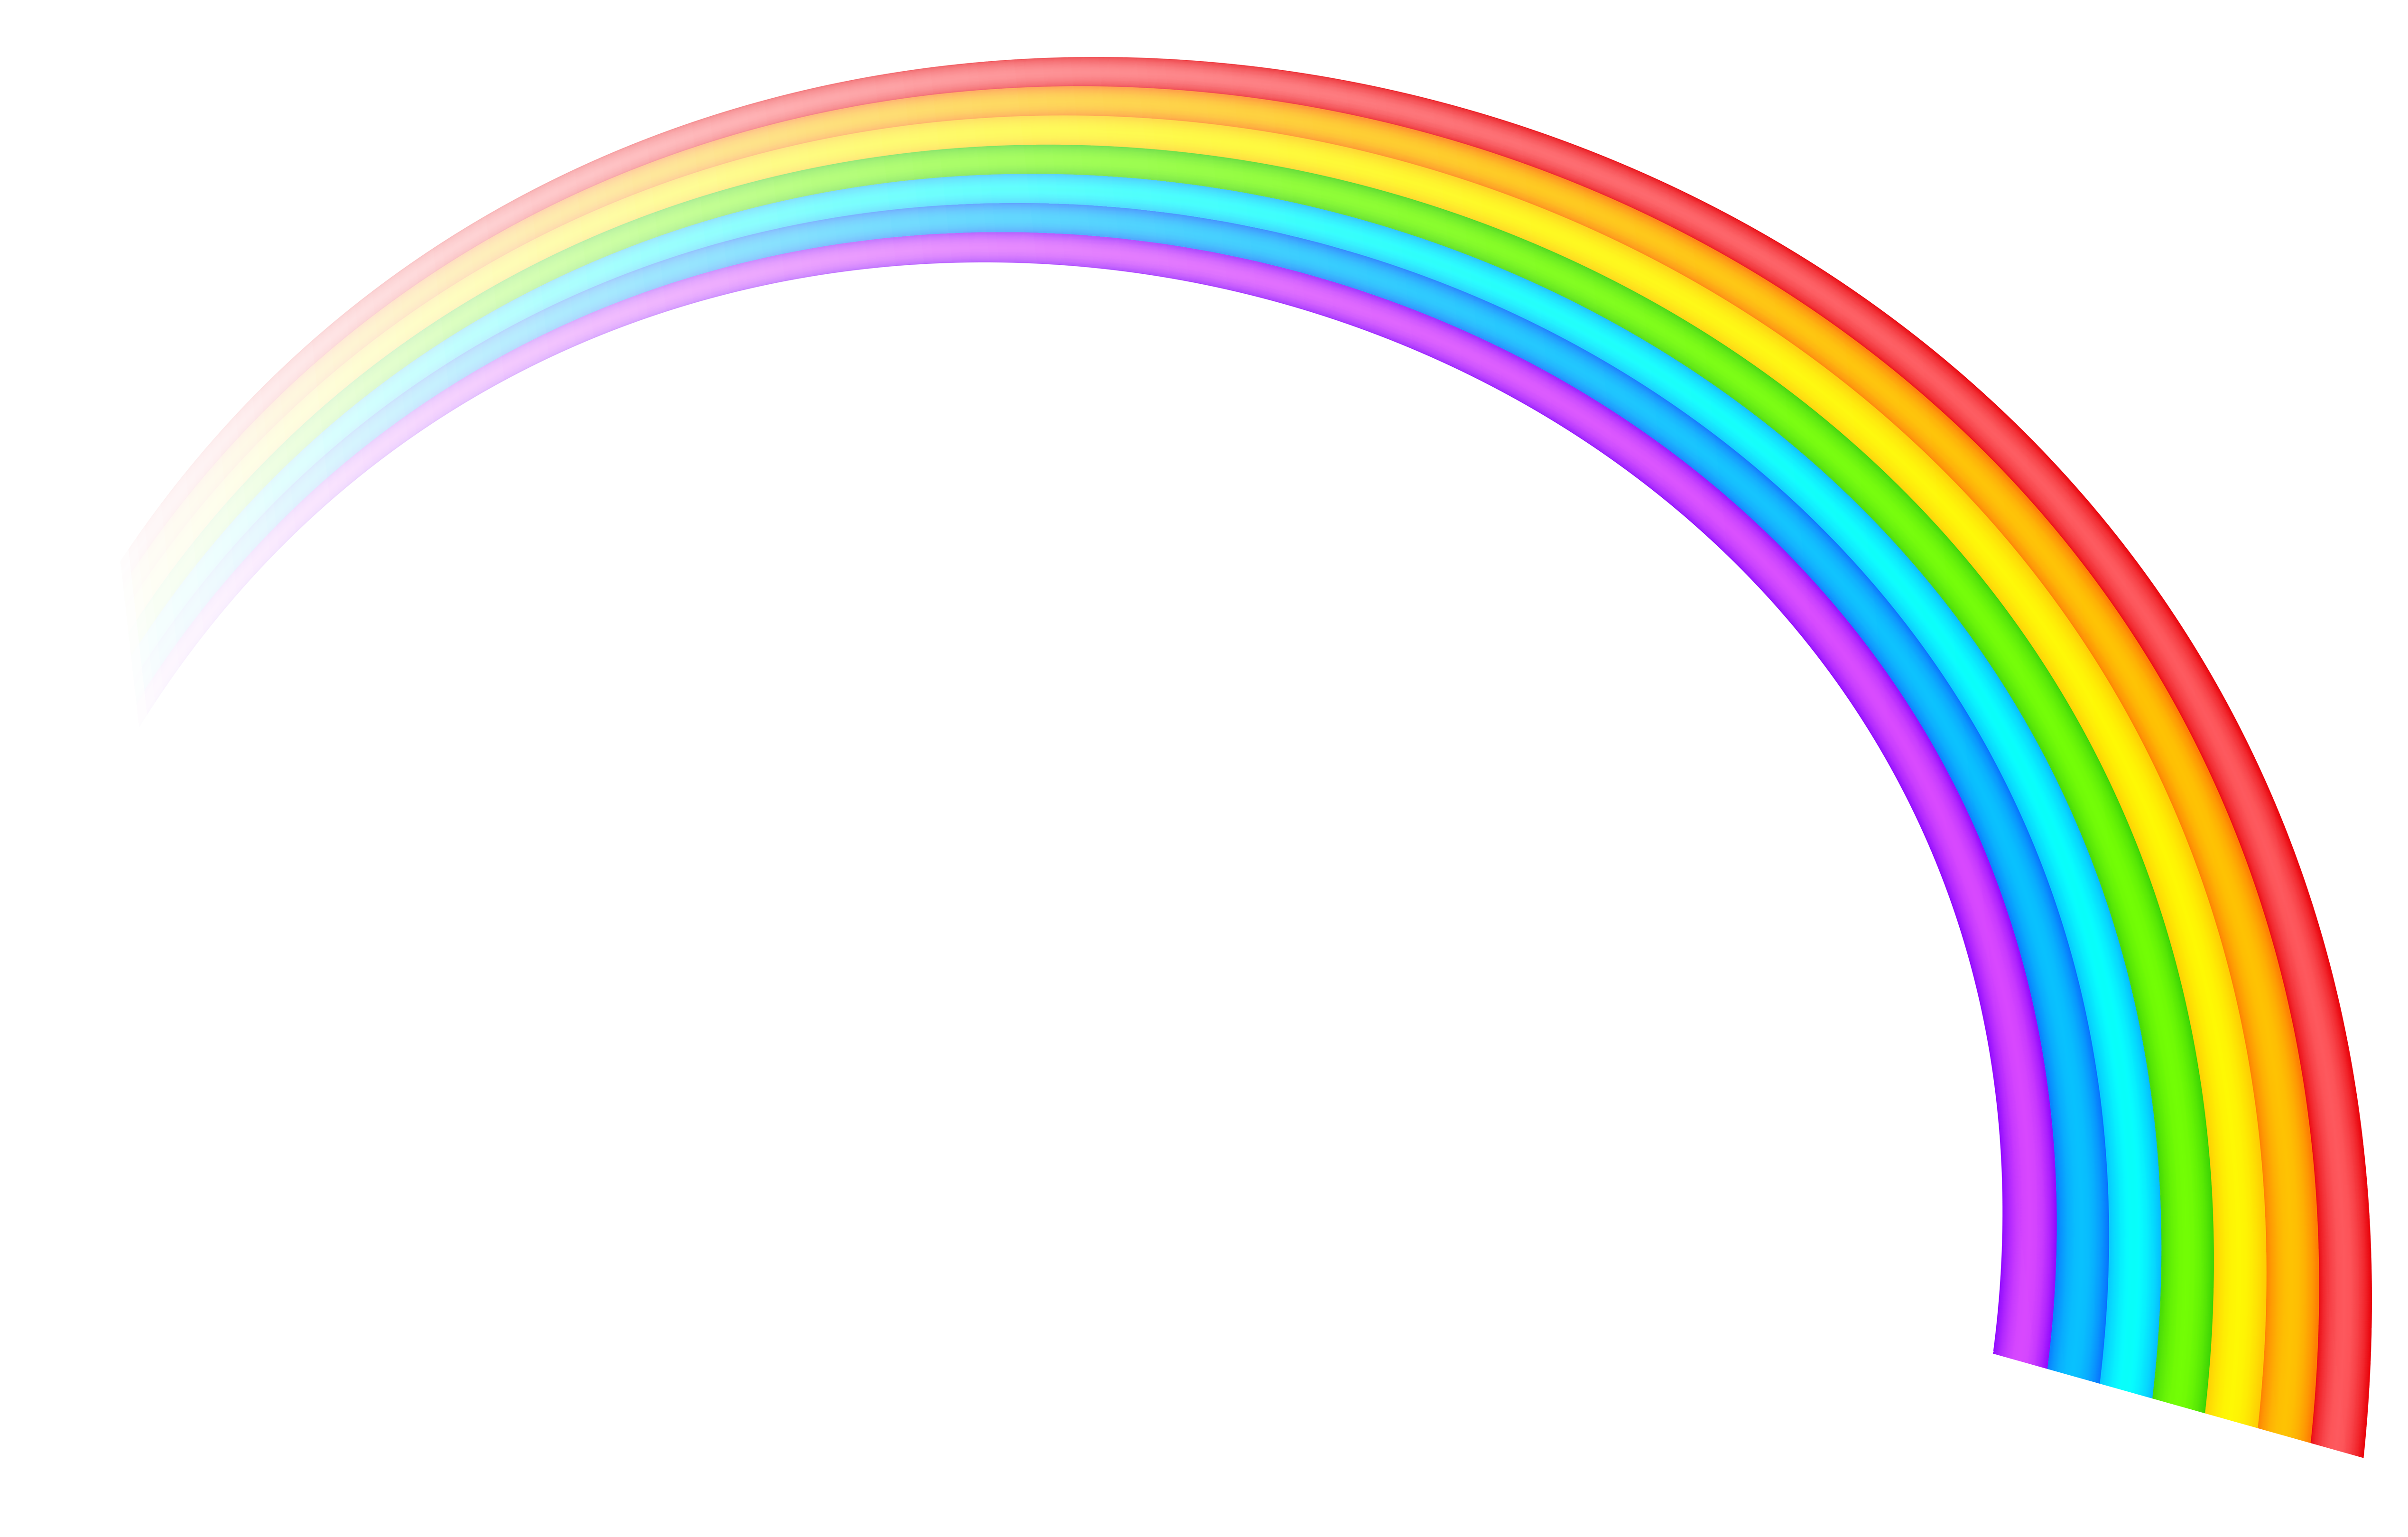 5076x3239 Rainbow Transparent Clipart Pictureu200b Gallery Yopriceville